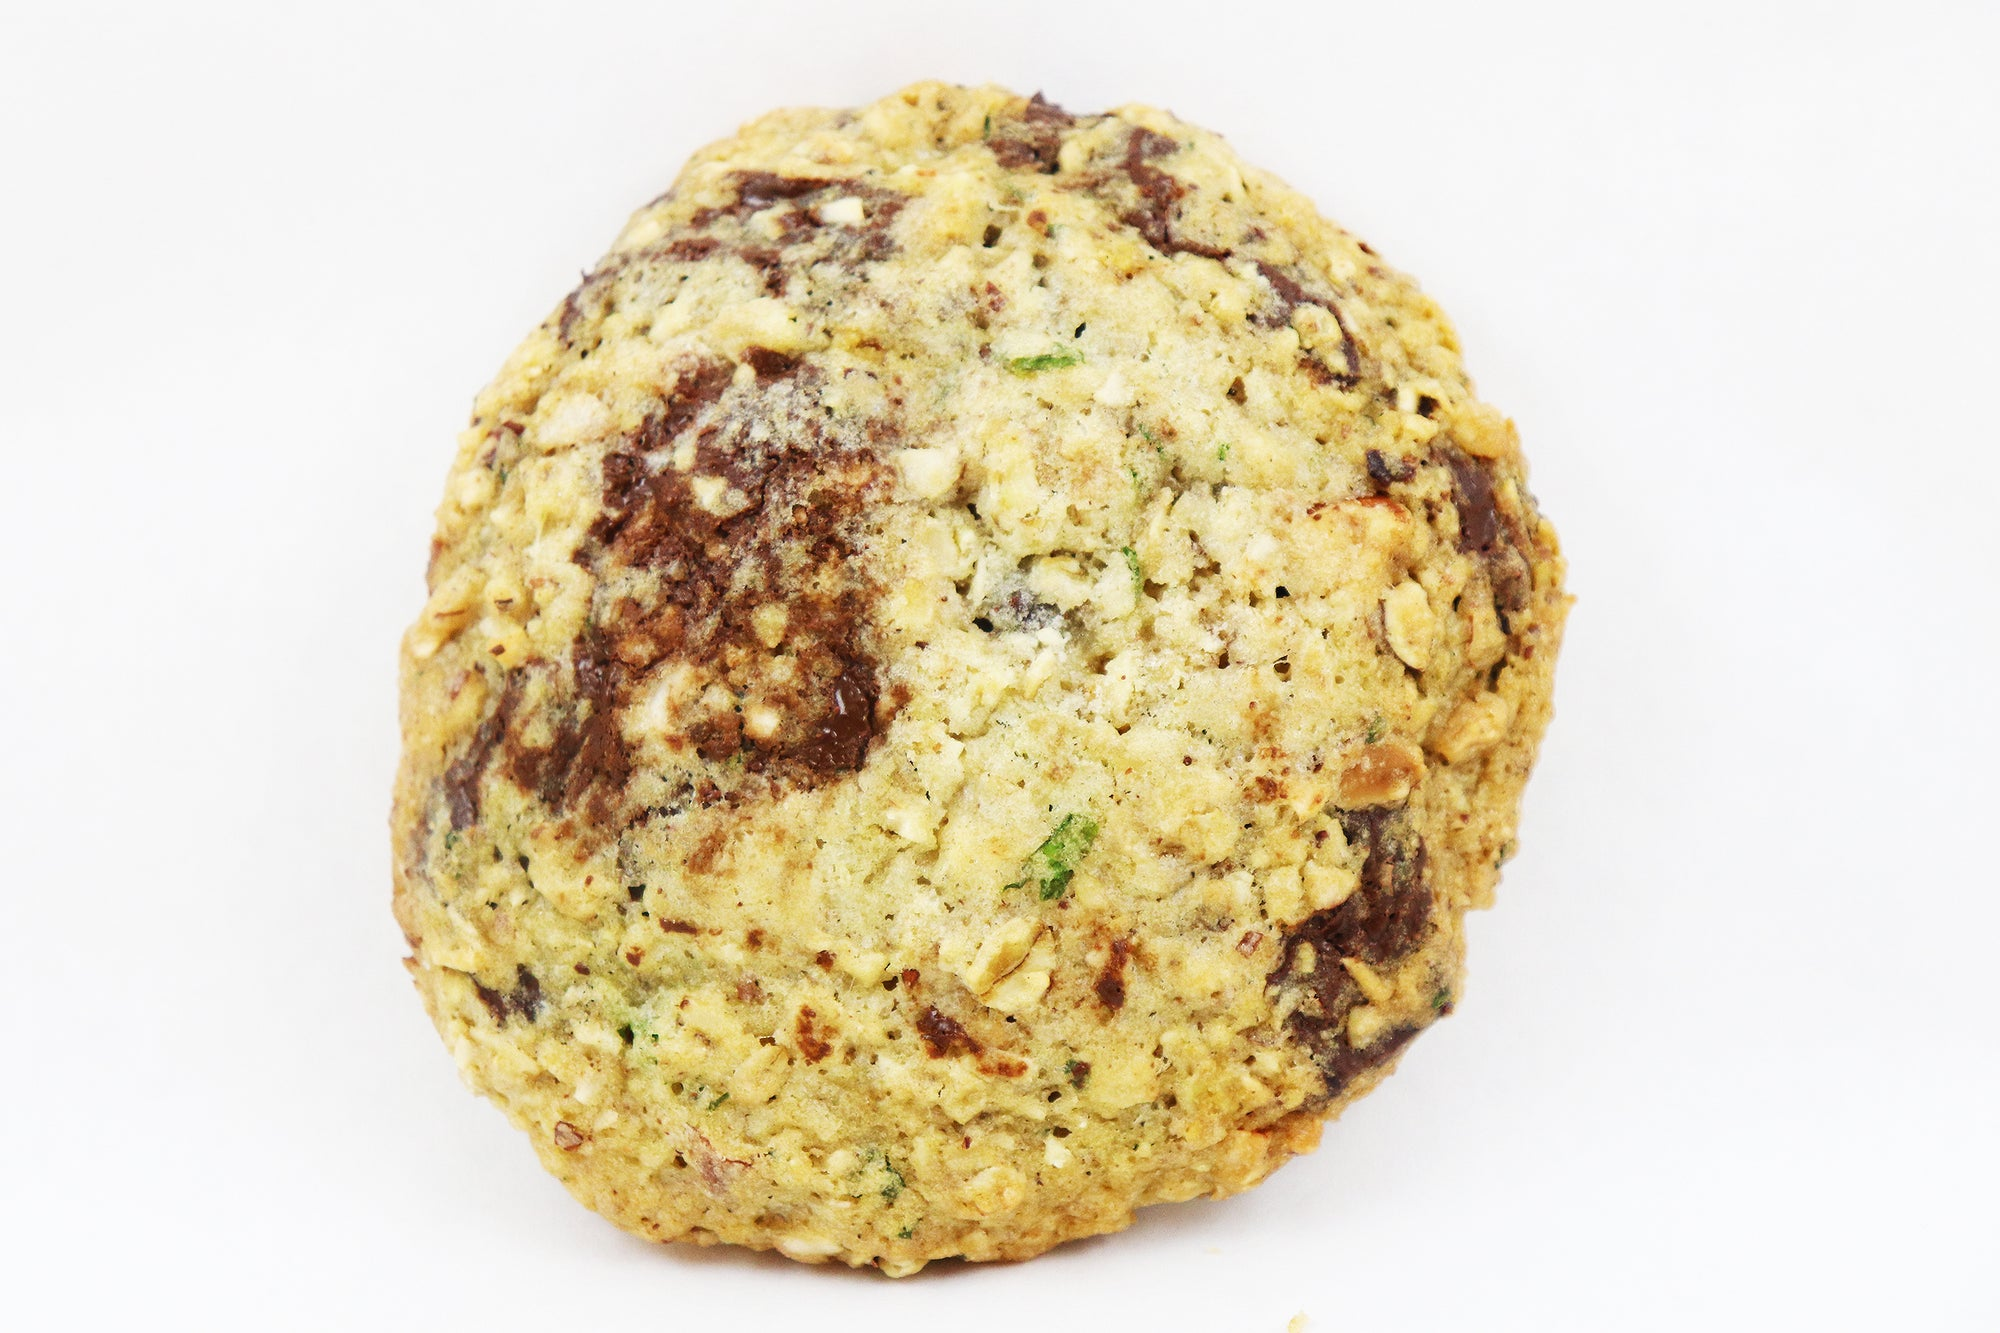 Coconut Chocolate Mint cookie